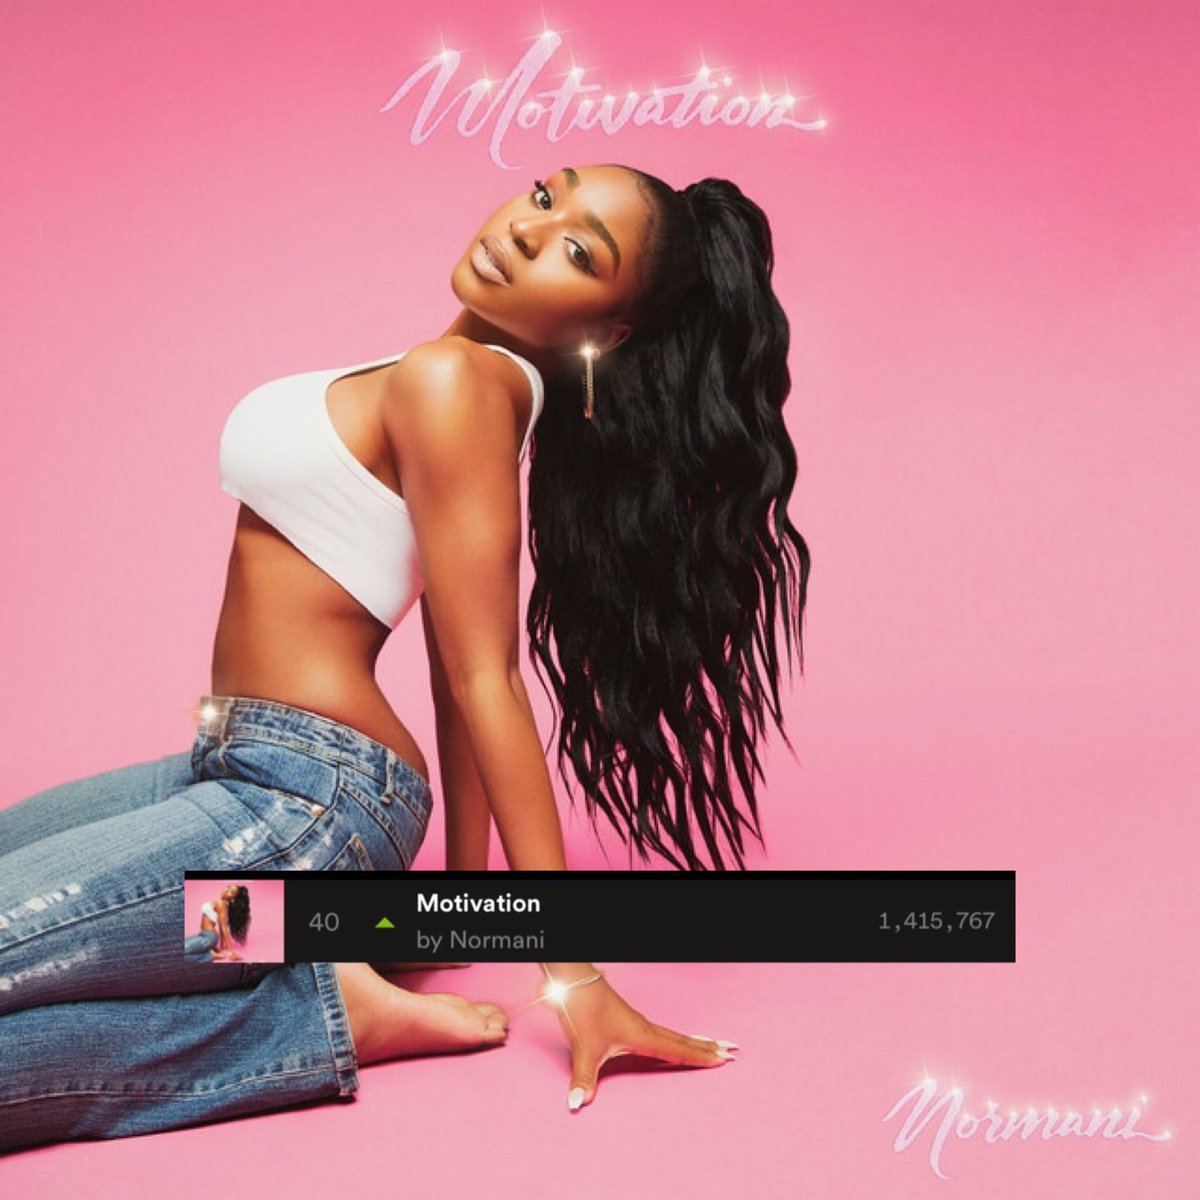 """""""Motivation"""" by @Normani jumps 12 spots and re-enters the Top 50 on Global Spotify at #40. <br>http://pic.twitter.com/ou88qZfJGl"""